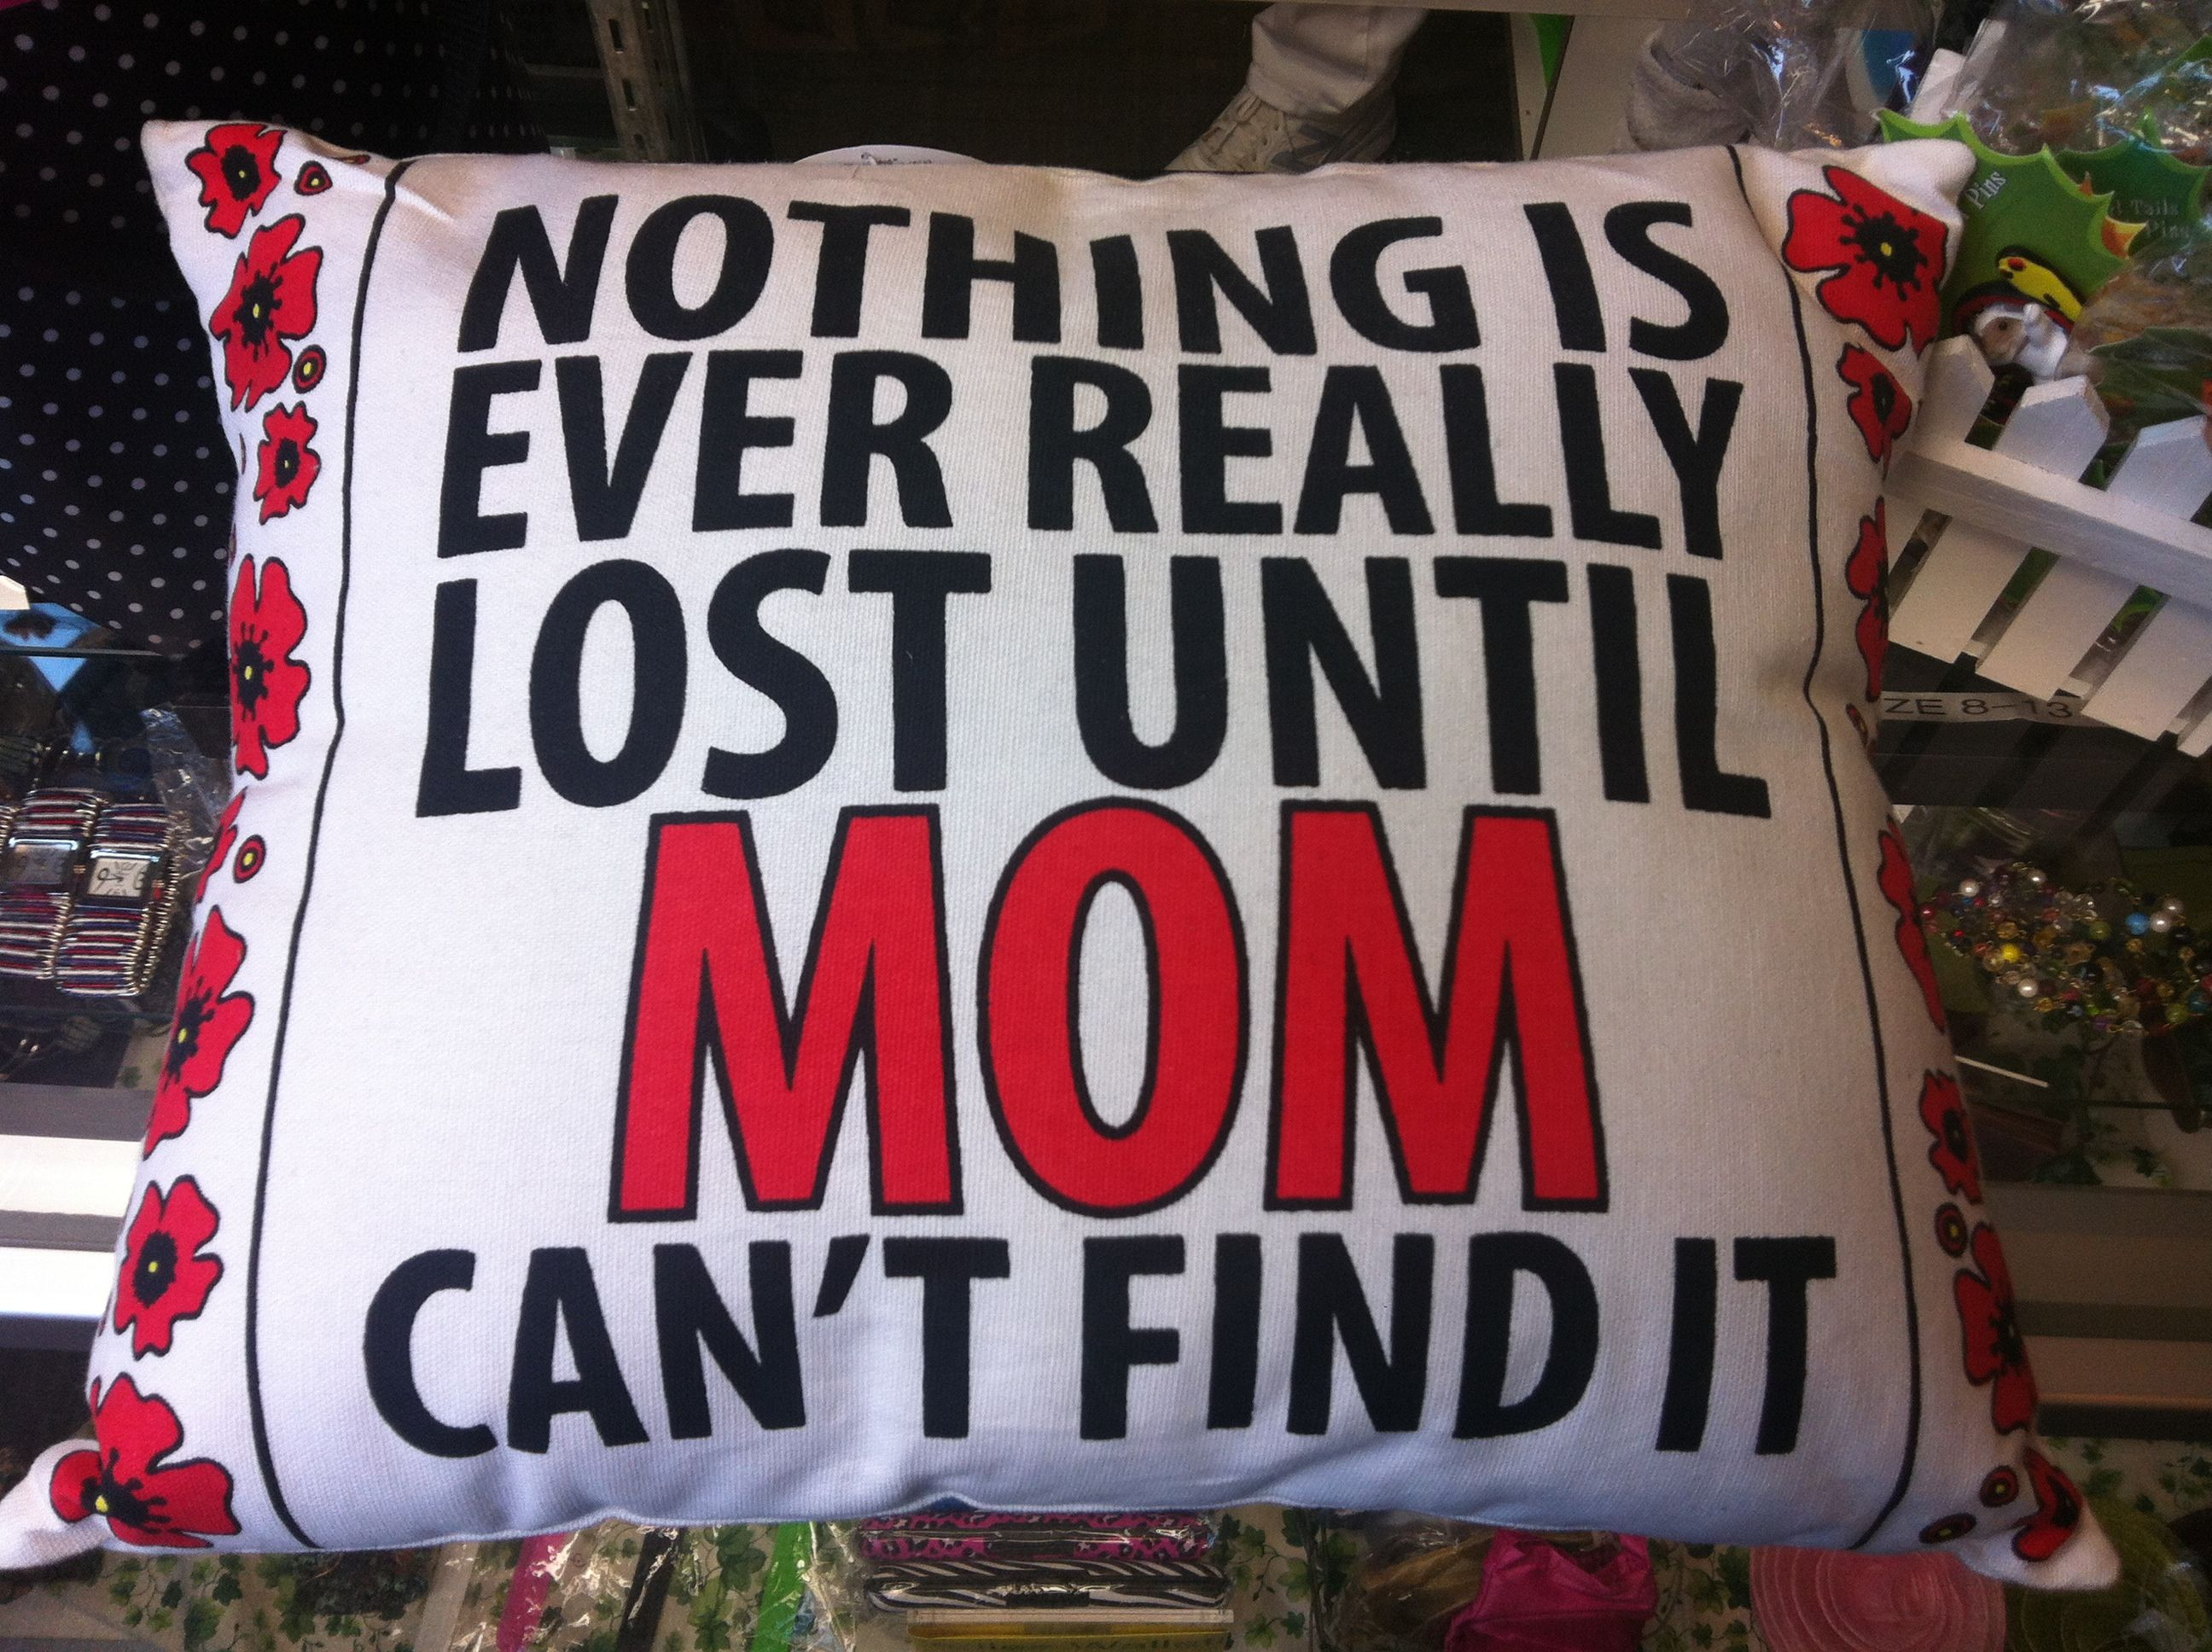 It's really lost when mom can't find it...